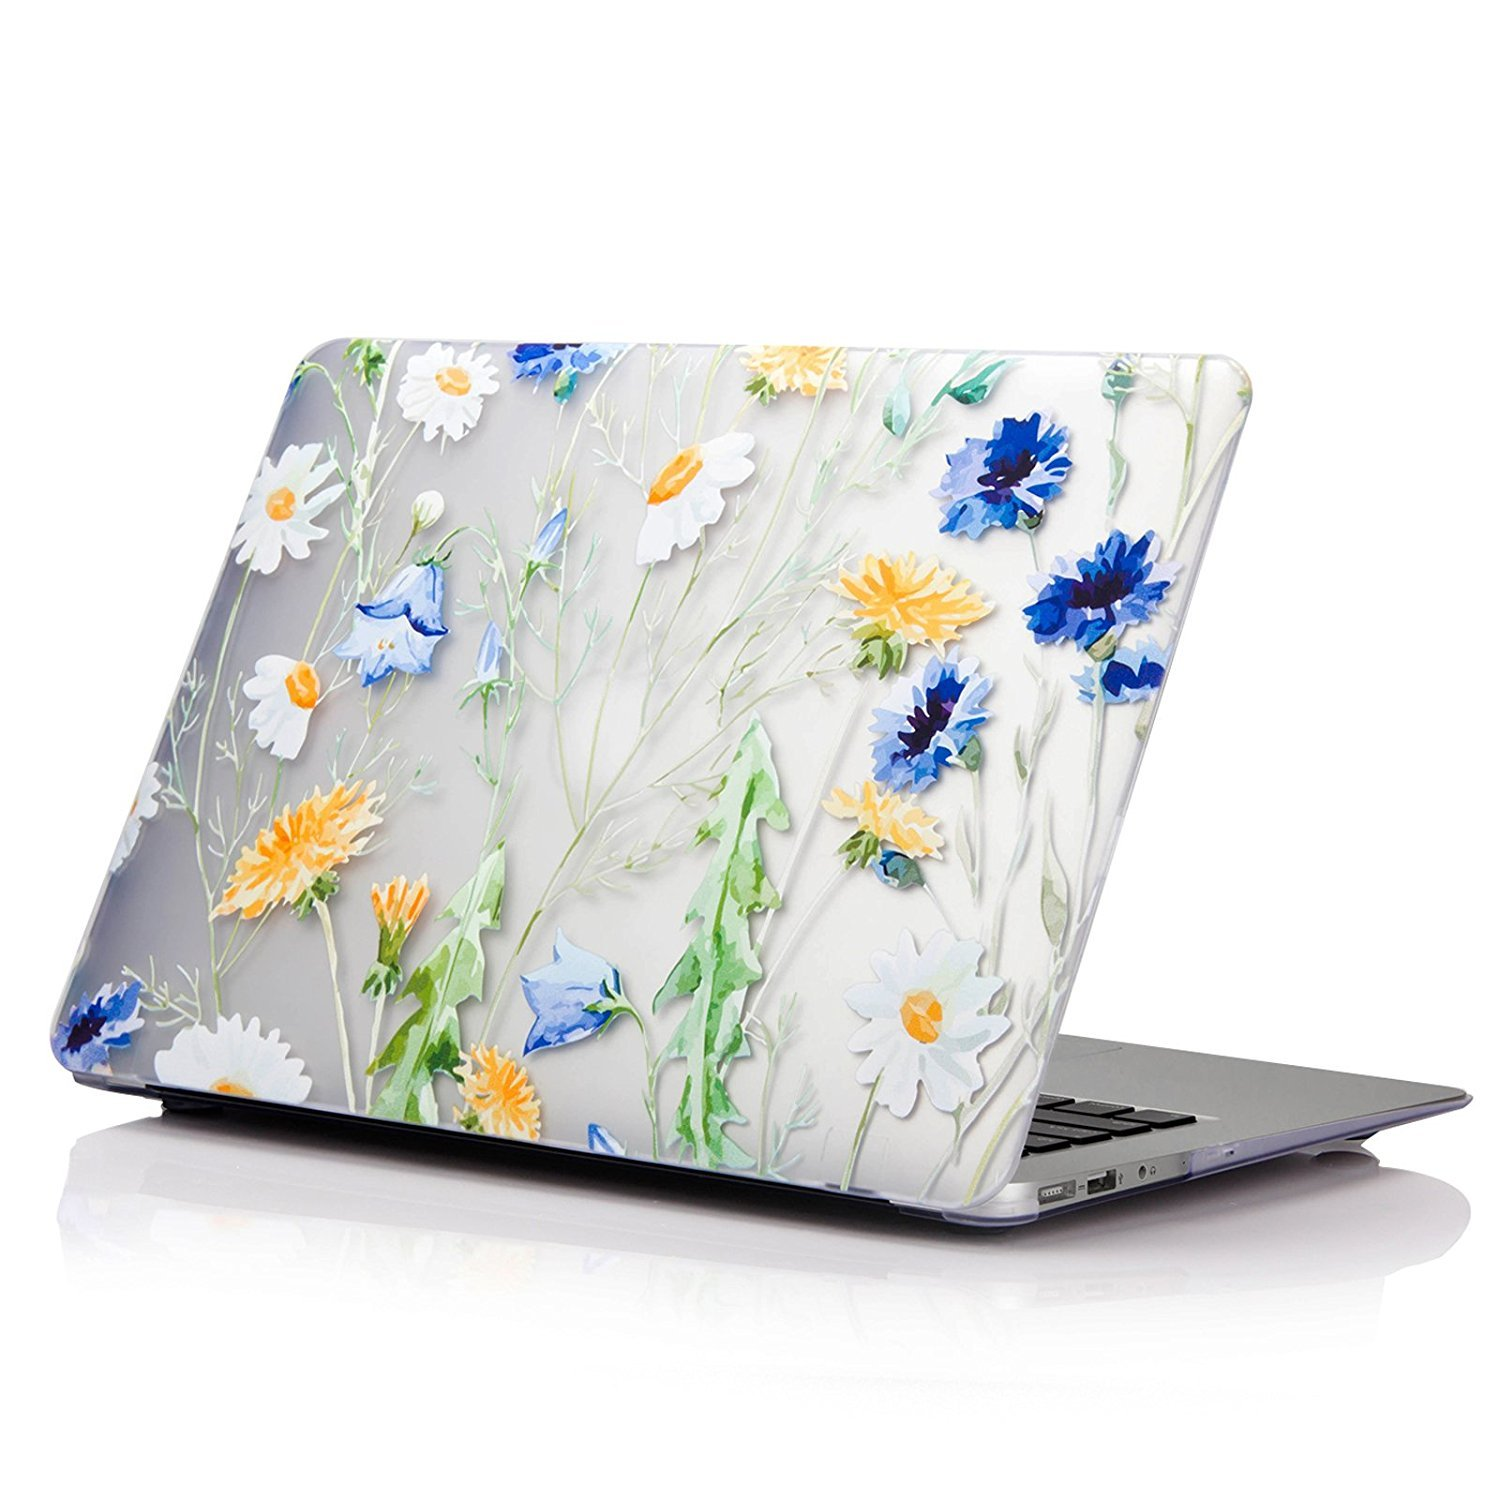 SAYAke Protective Hard Case for MacBook Pro 15 with CD-ROM(Model:A1286 Floral